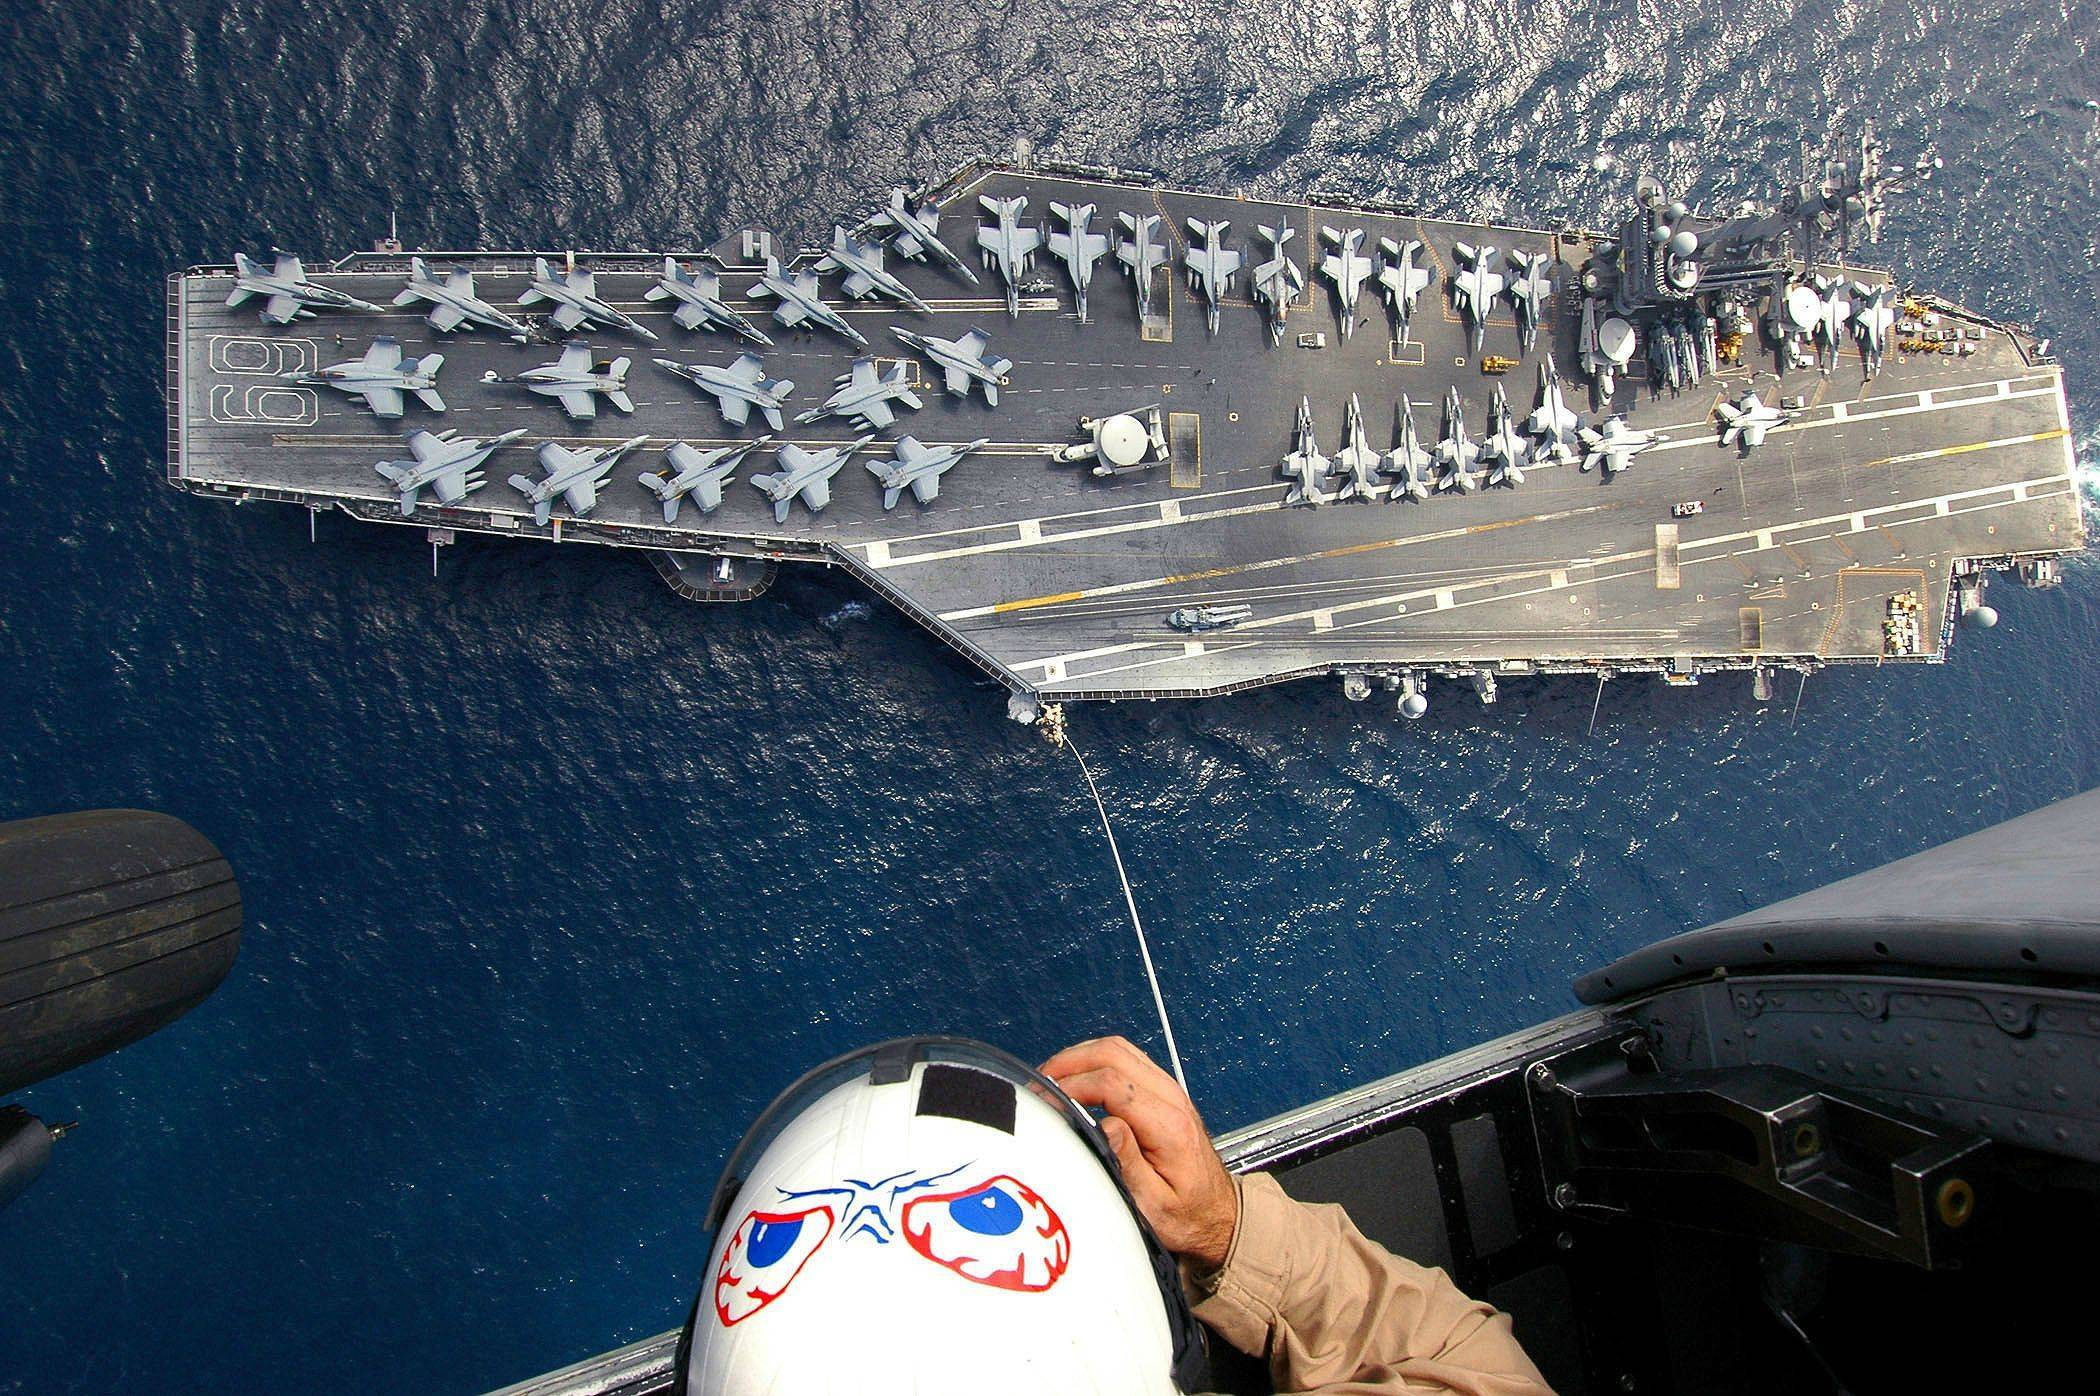 Amazing view of an aircraft carrier